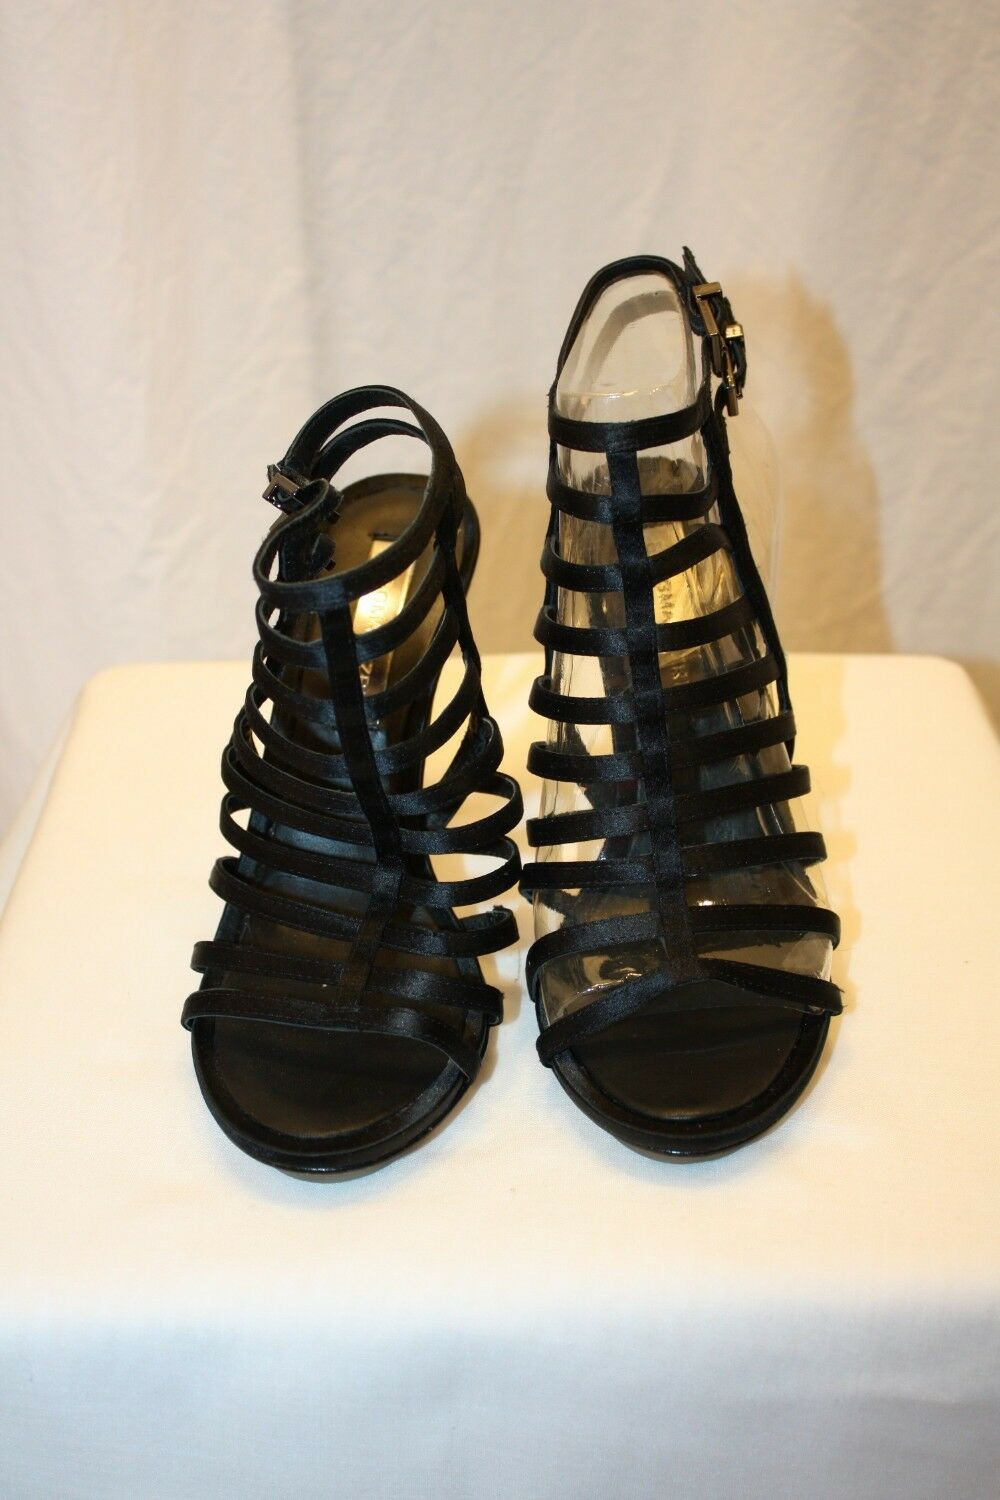 BCBG MAX AZRIA BLACK SATIN STRAPS LEATHER SOLE STORE TRY ON SIZE 5.5B 35.5